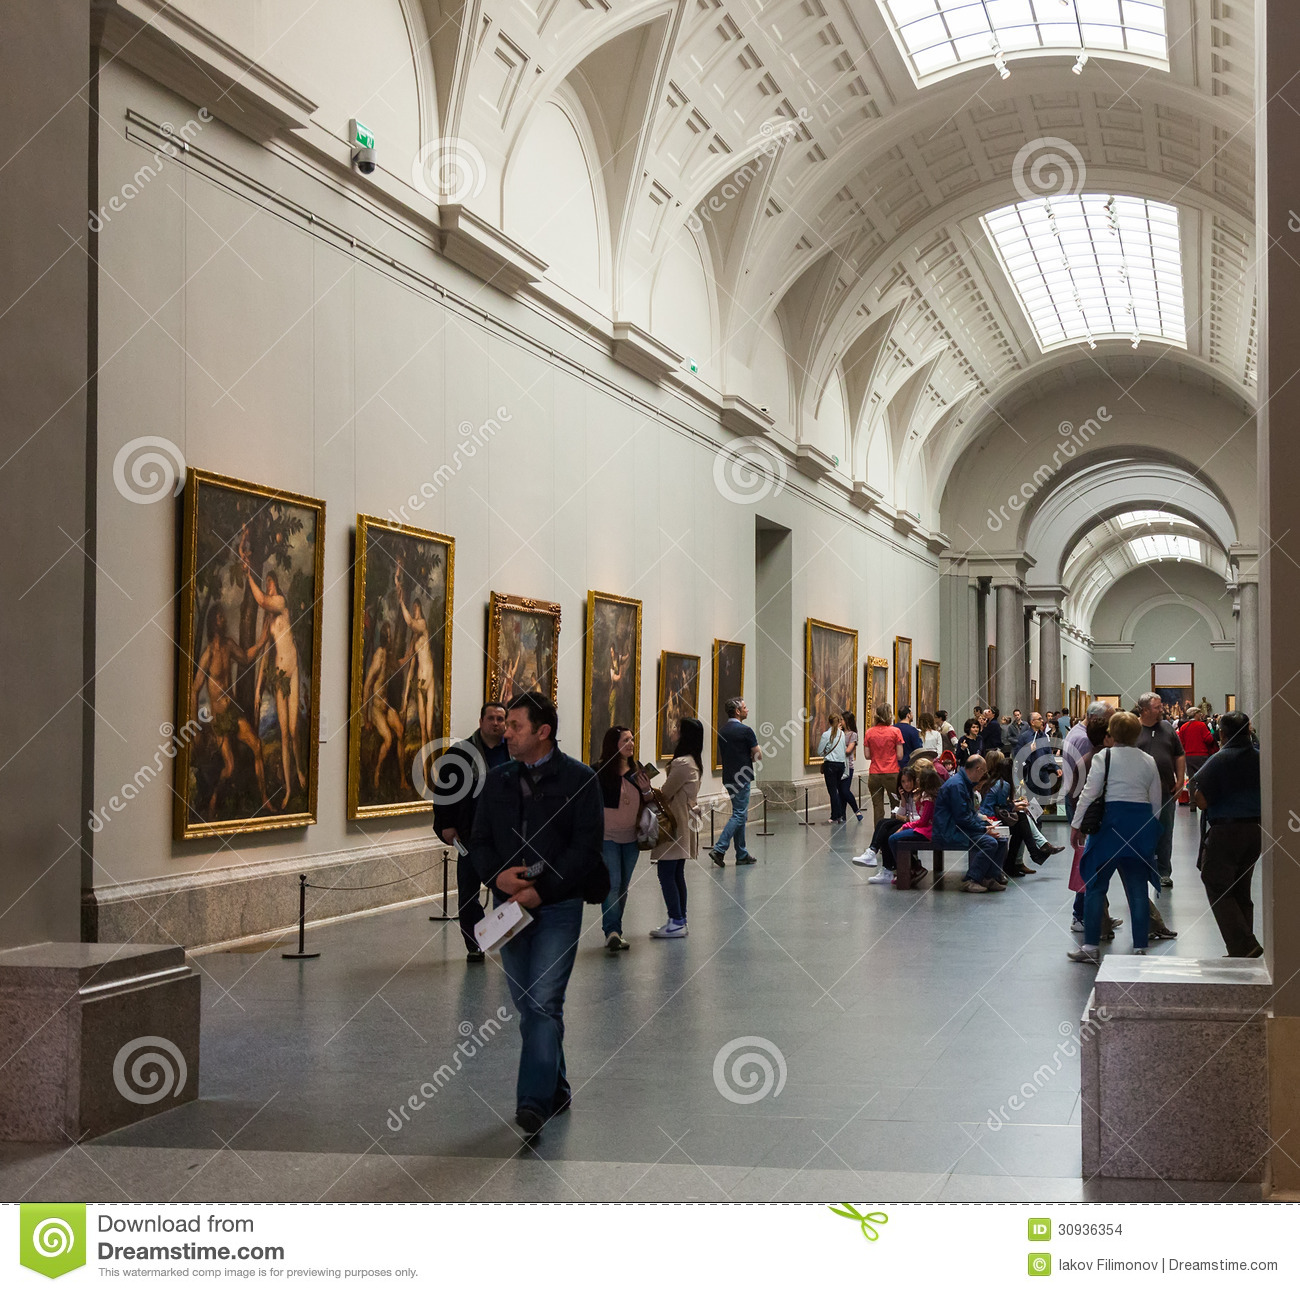 2304 in addition Scale Parapetti Corrimano as well 14812419550 together with Haus Mit Garage Die Moderne Garage also Stock Images Interior Prado Museum Madrid Spain April Museo Del April Spain Outdoor Stands Newspapers Magazines City Image30936354. on panorama interior design